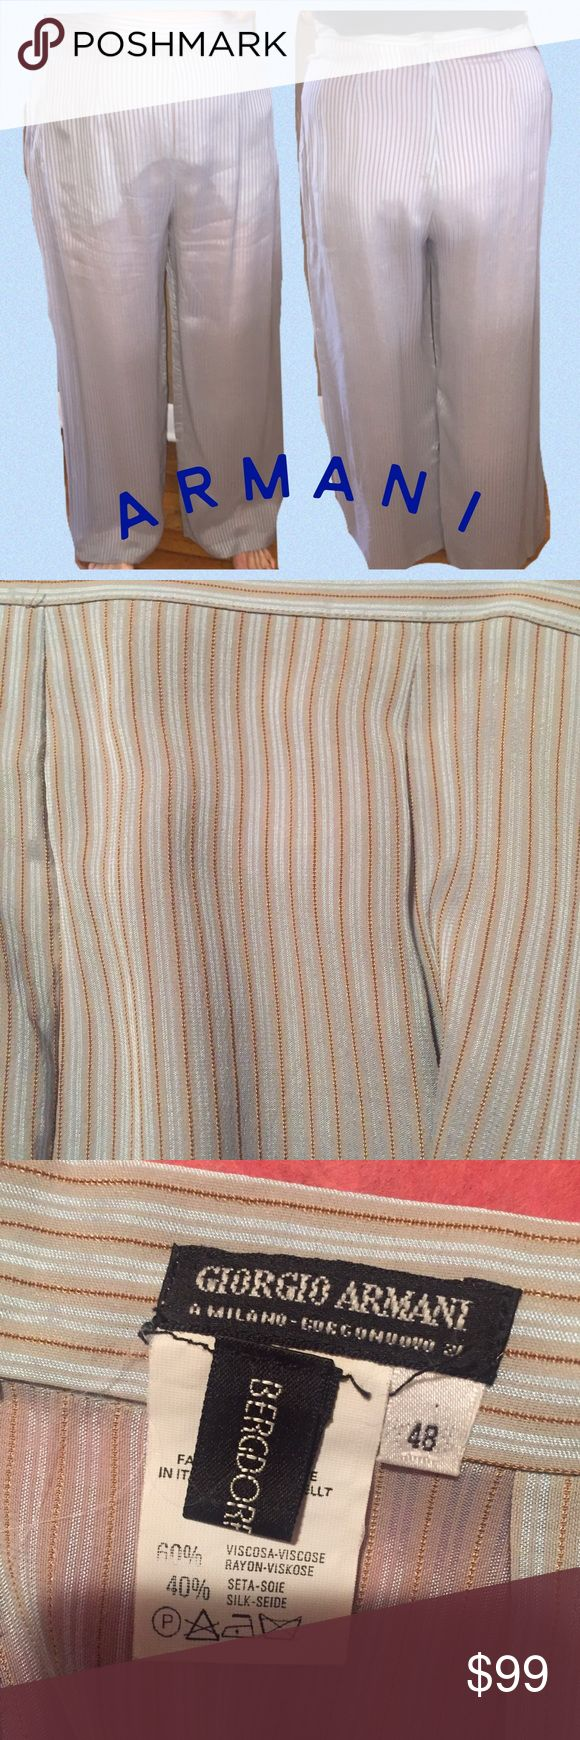 👸🏼Armani Silk Pants. Light blue/taupe striped 48 👸🏼Armani Silk Pants. Light blue/taupe striped. Size 48. Side zipper. New condition. Worn once. 100% silk. Absolutely gorgeous. Pictures don't do them justice. Size 48 is approximately a size 12/14. Model is a size 10. Giorgio Armani Pants Trousers